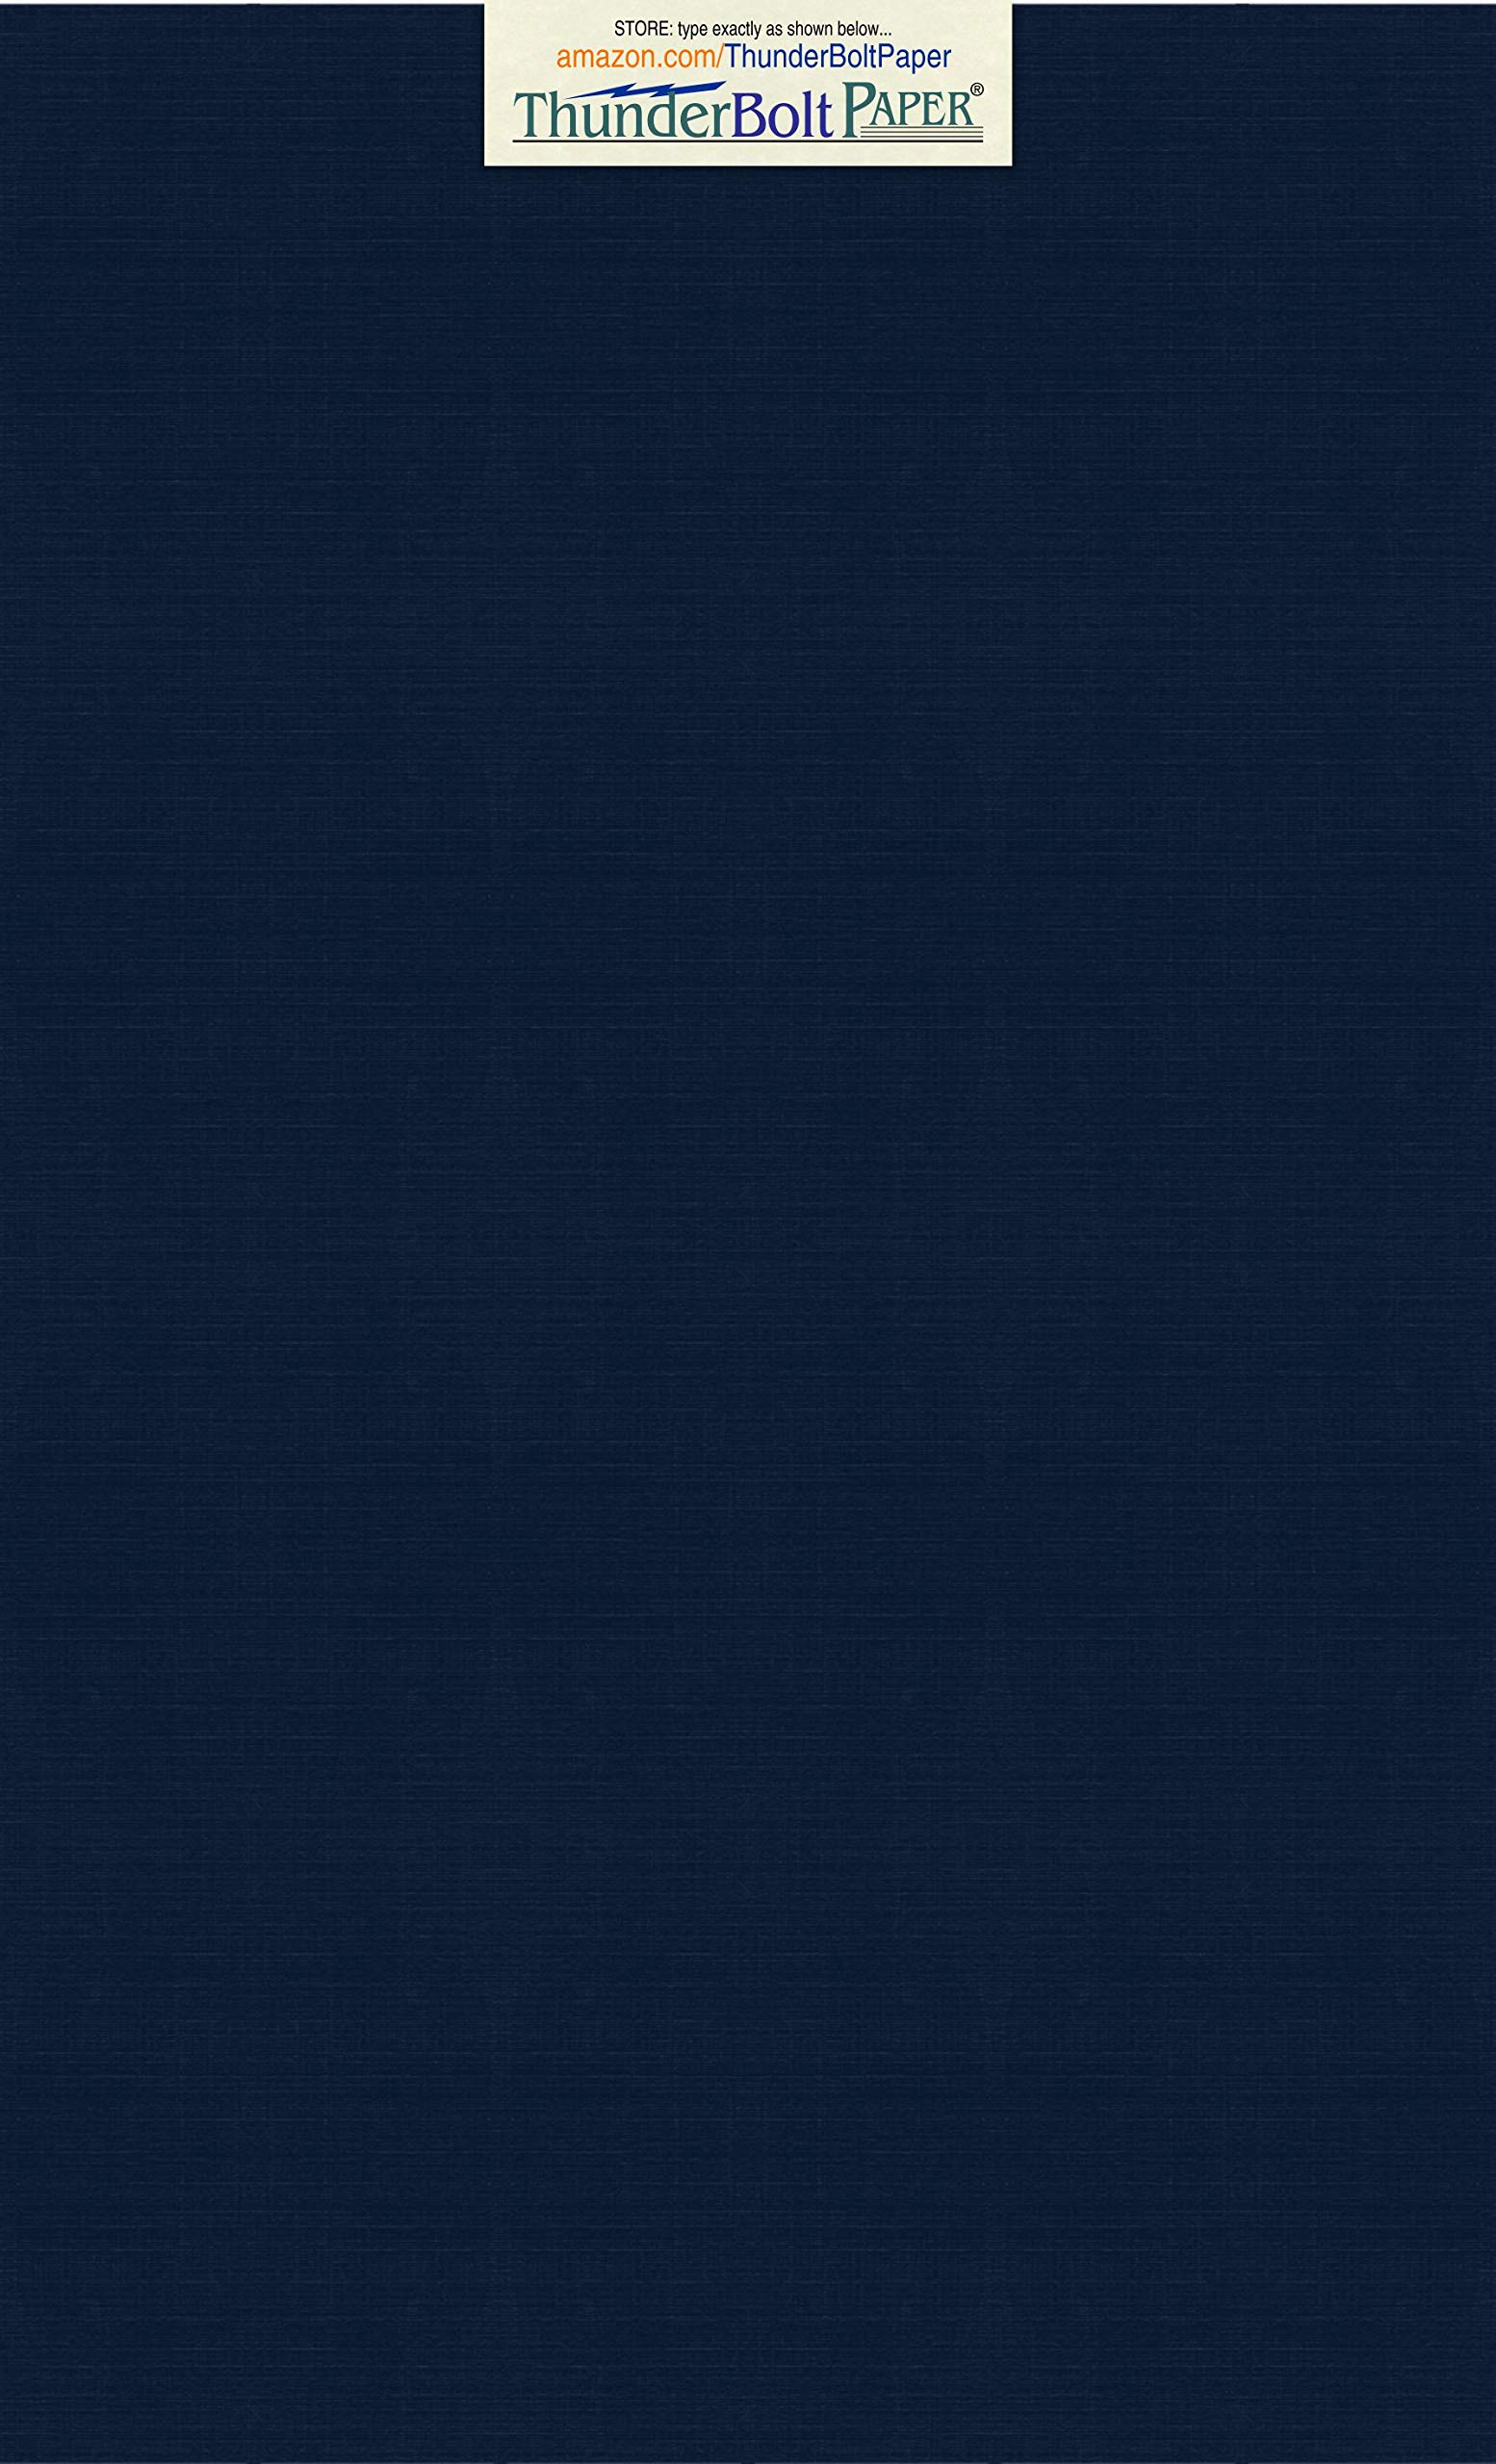 100 Dark Navy Blue Linen 80# Cover Paper Sheets - 8.5 X 14 Inches Legal|Menu Size - 80 lb/Pound Card Weight - Fine Linen Textured Finish - Deep Dye Quality Cardstock